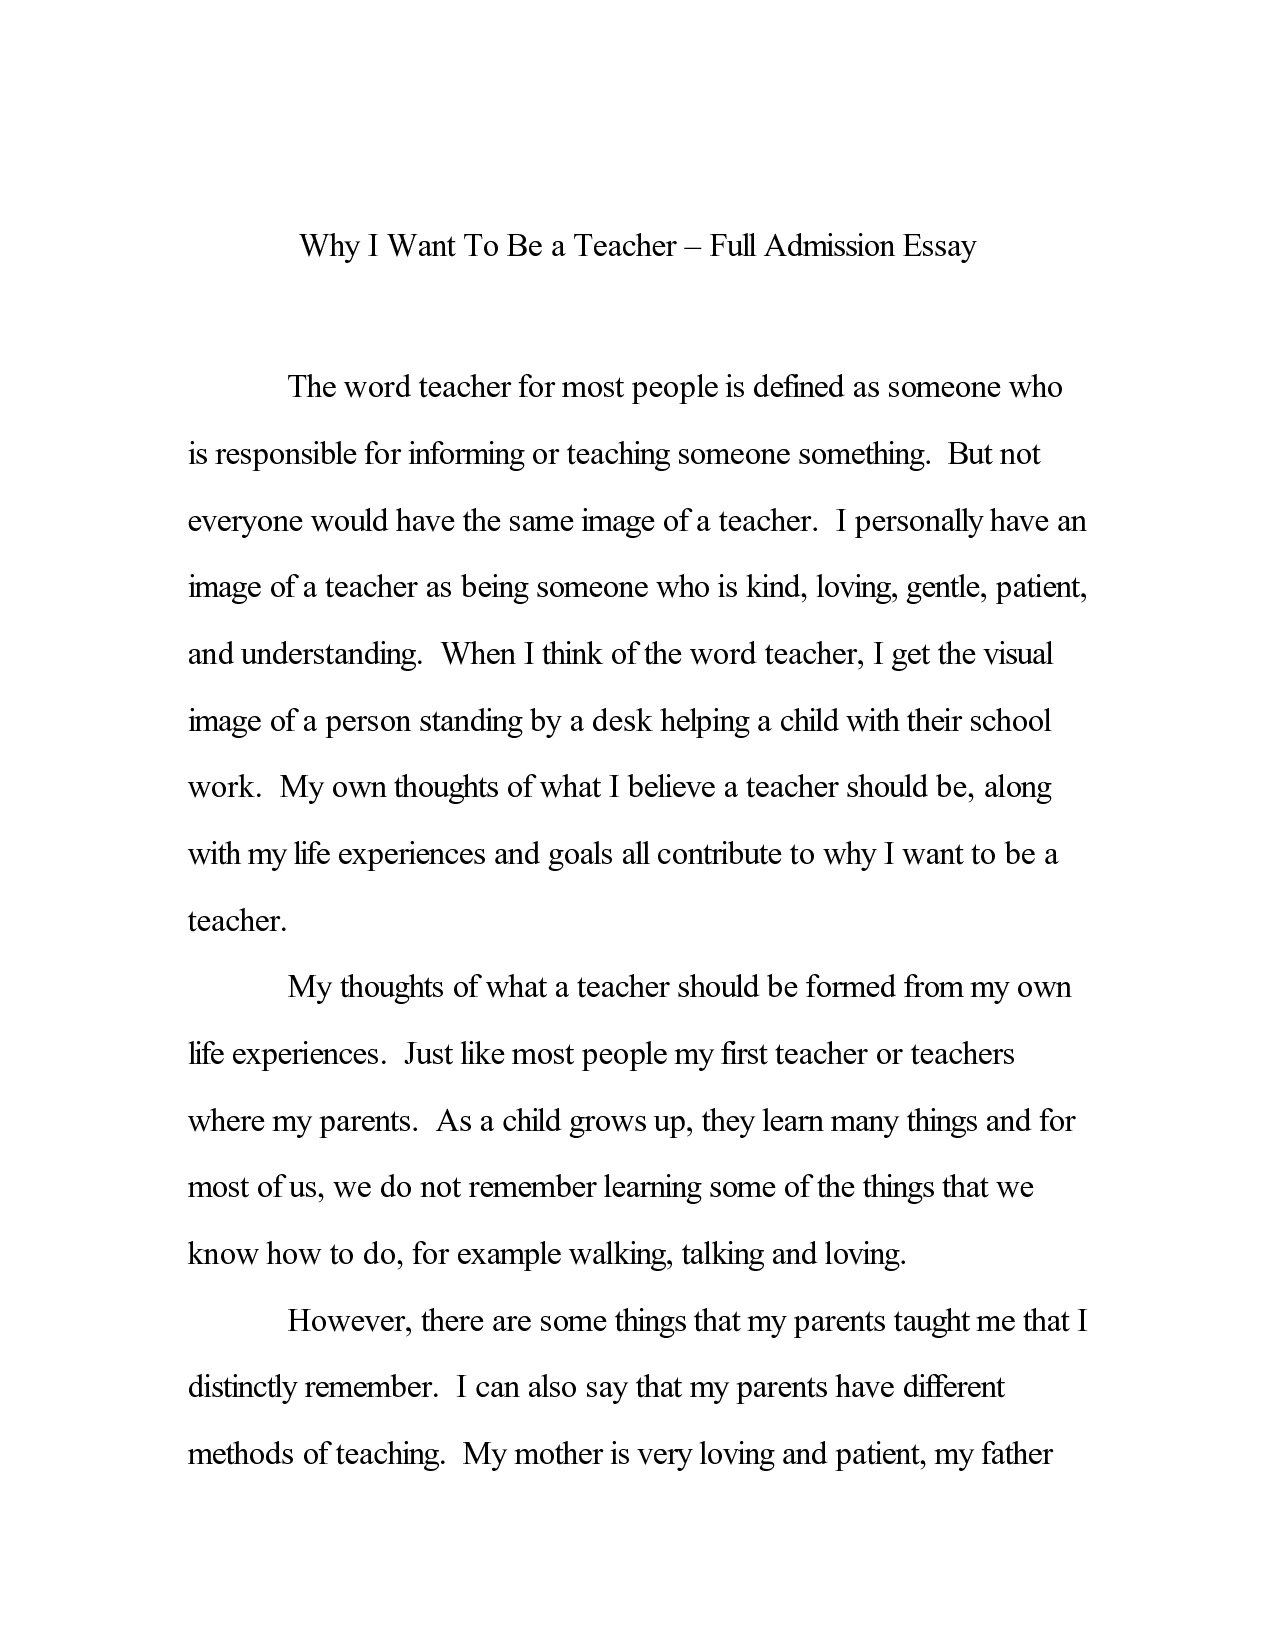 003 College App Essays Breathtaking Essay Examples Sample Application About Yourself 500 Words Full